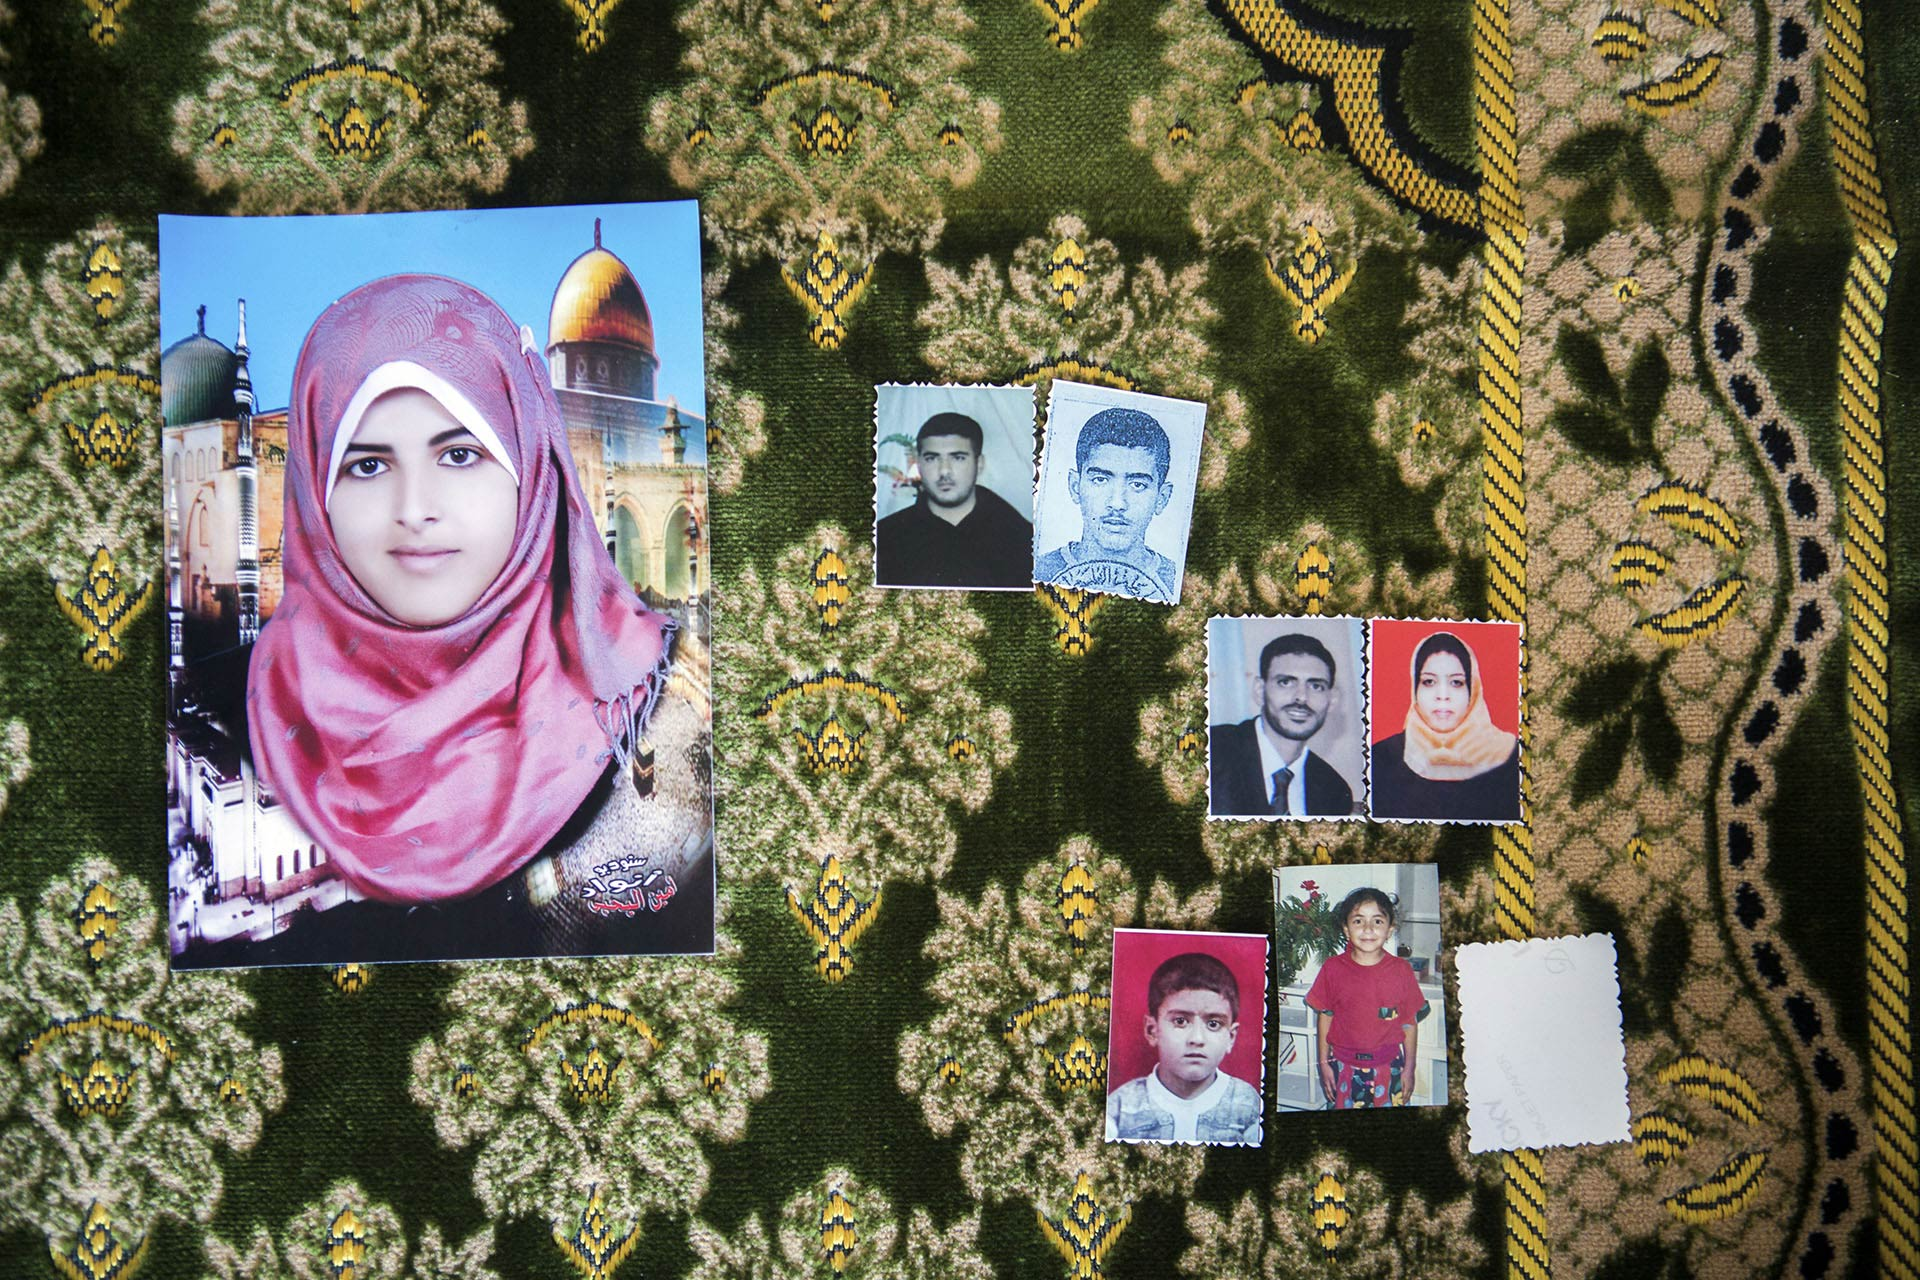 Photos of seven of the eight members of the al-Louh family that were killed, displayed on Iman al-Louh's prayer rug. Iman was using that rug when she was hit by a piece of concrete that flew into the room through a window.